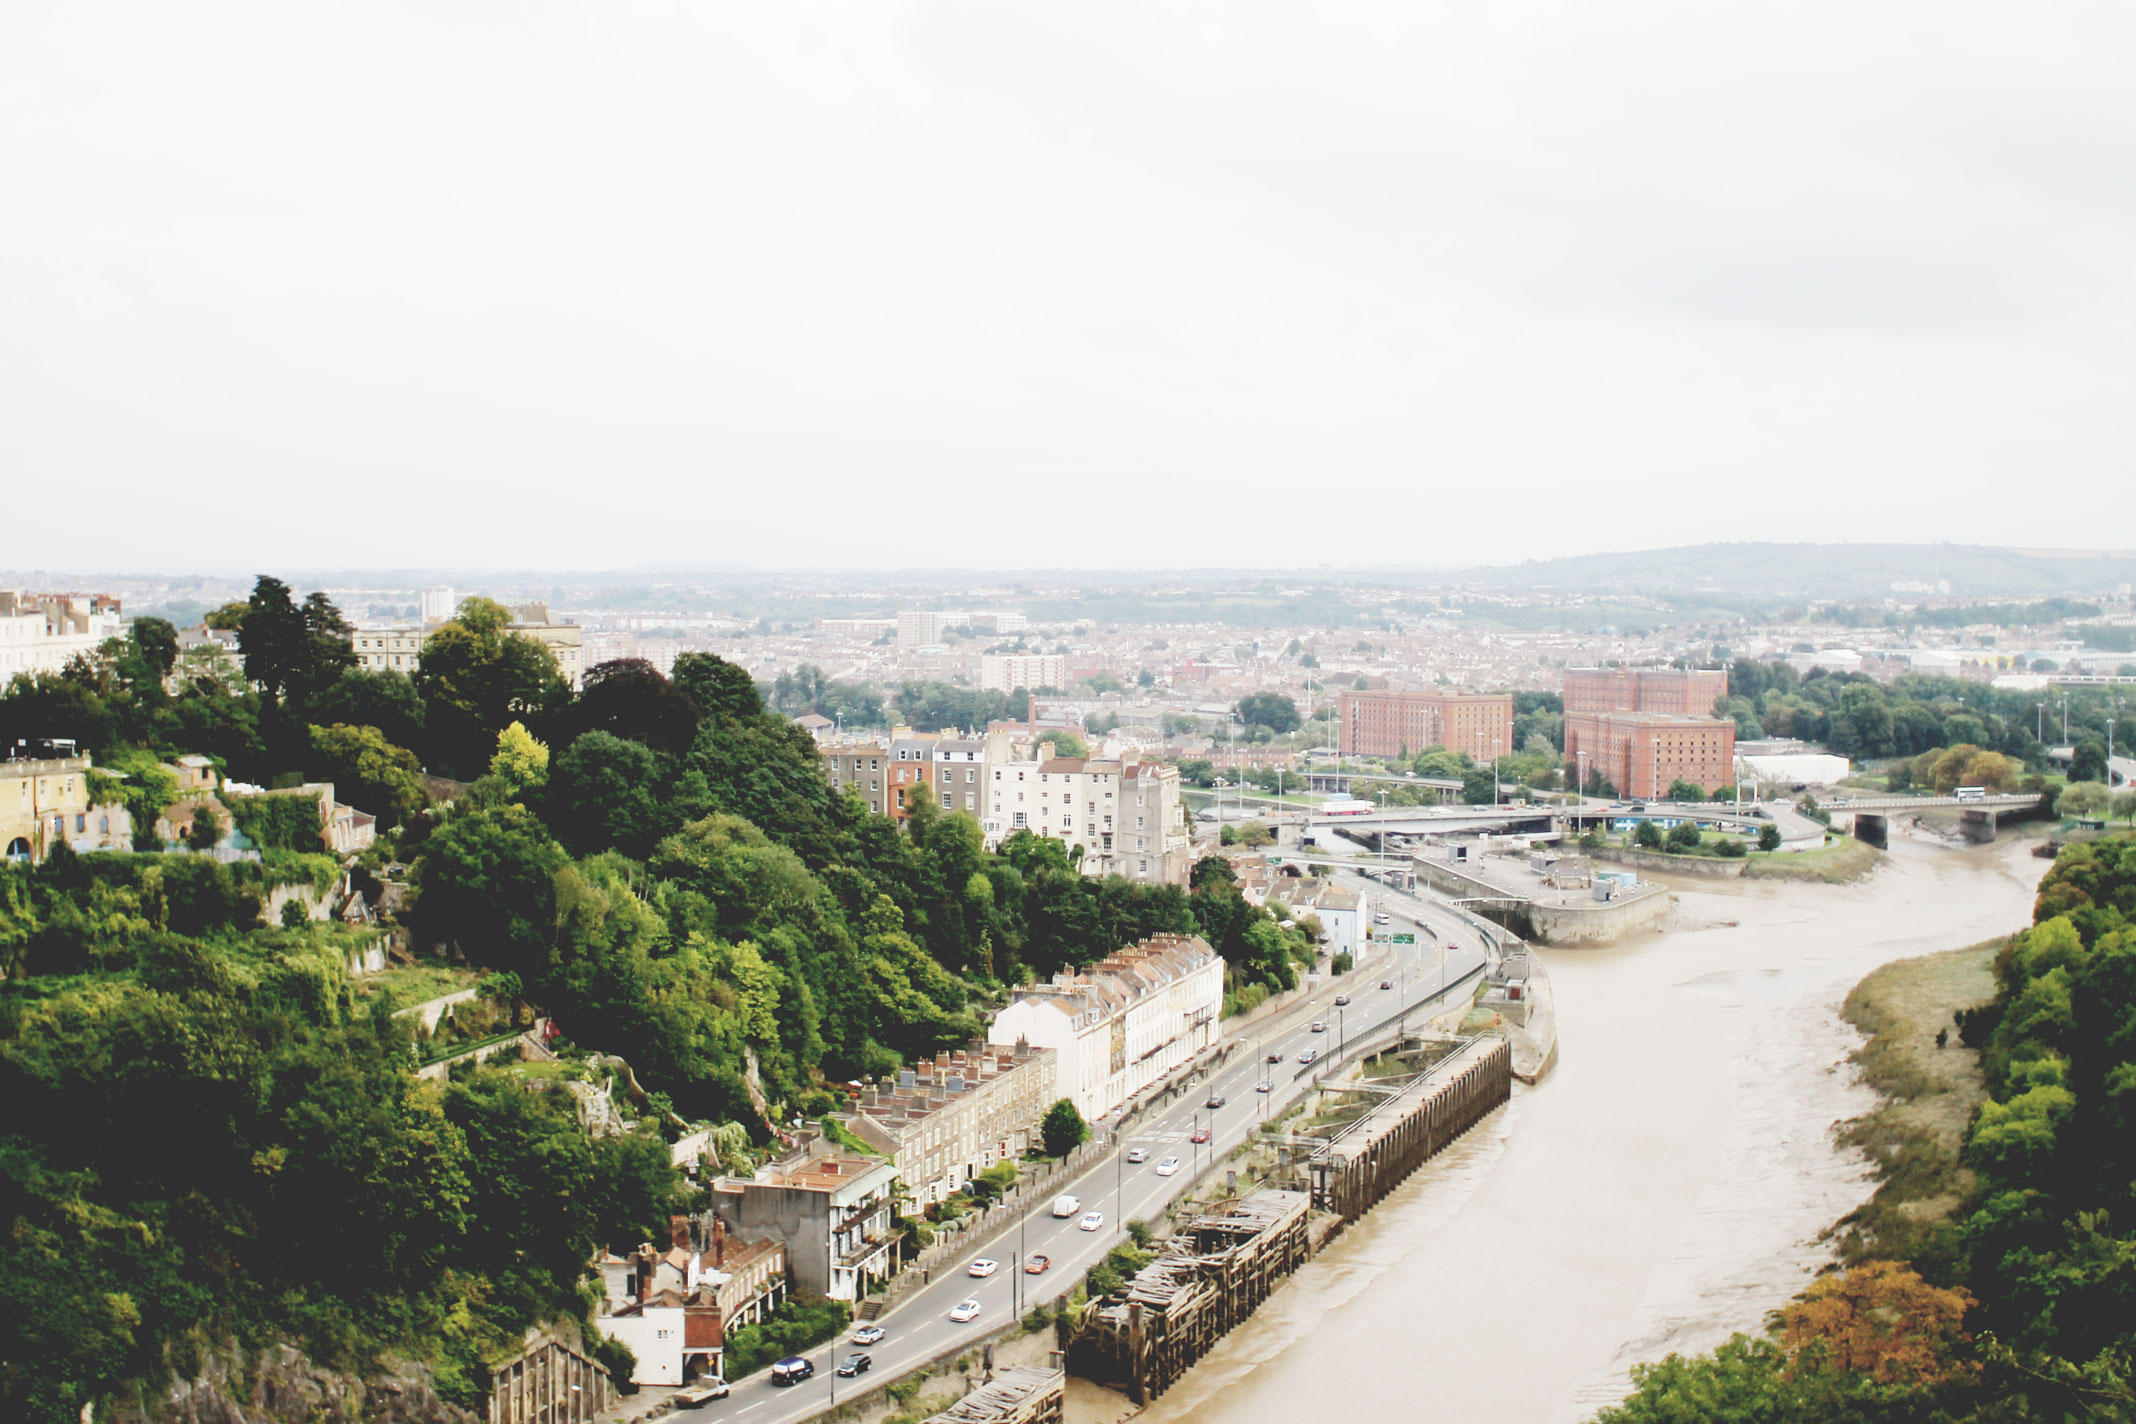 Styleat30 - Travel UK - Bristol - Clifton Suspension Bridge - Start a Blog - Party Dress - Zaful Promotion 06